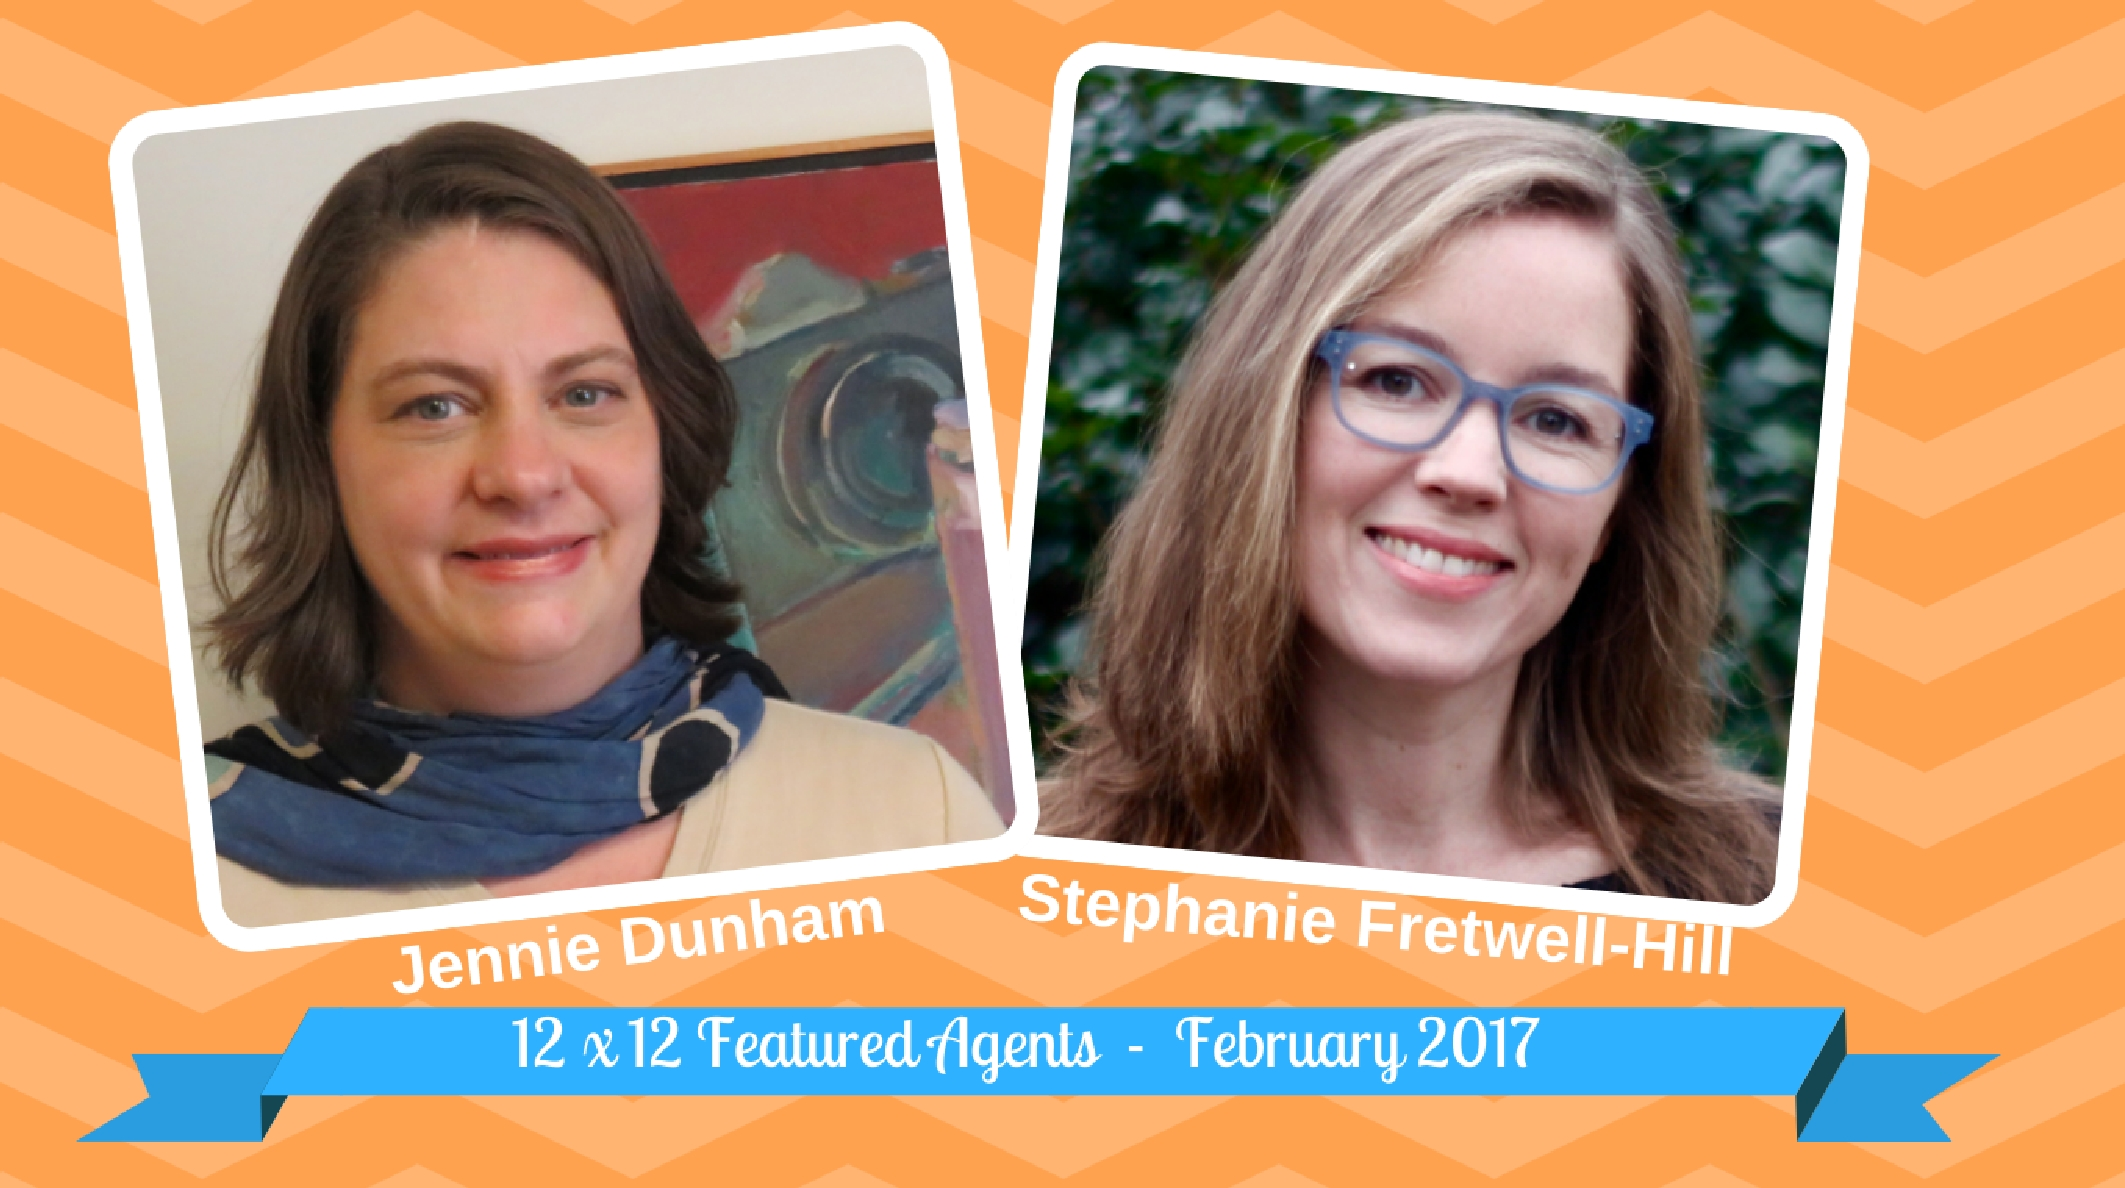 Jennie Dunham & Stephanie Fretwell-Hill – 12 X 12 February 2017 Featured Agents